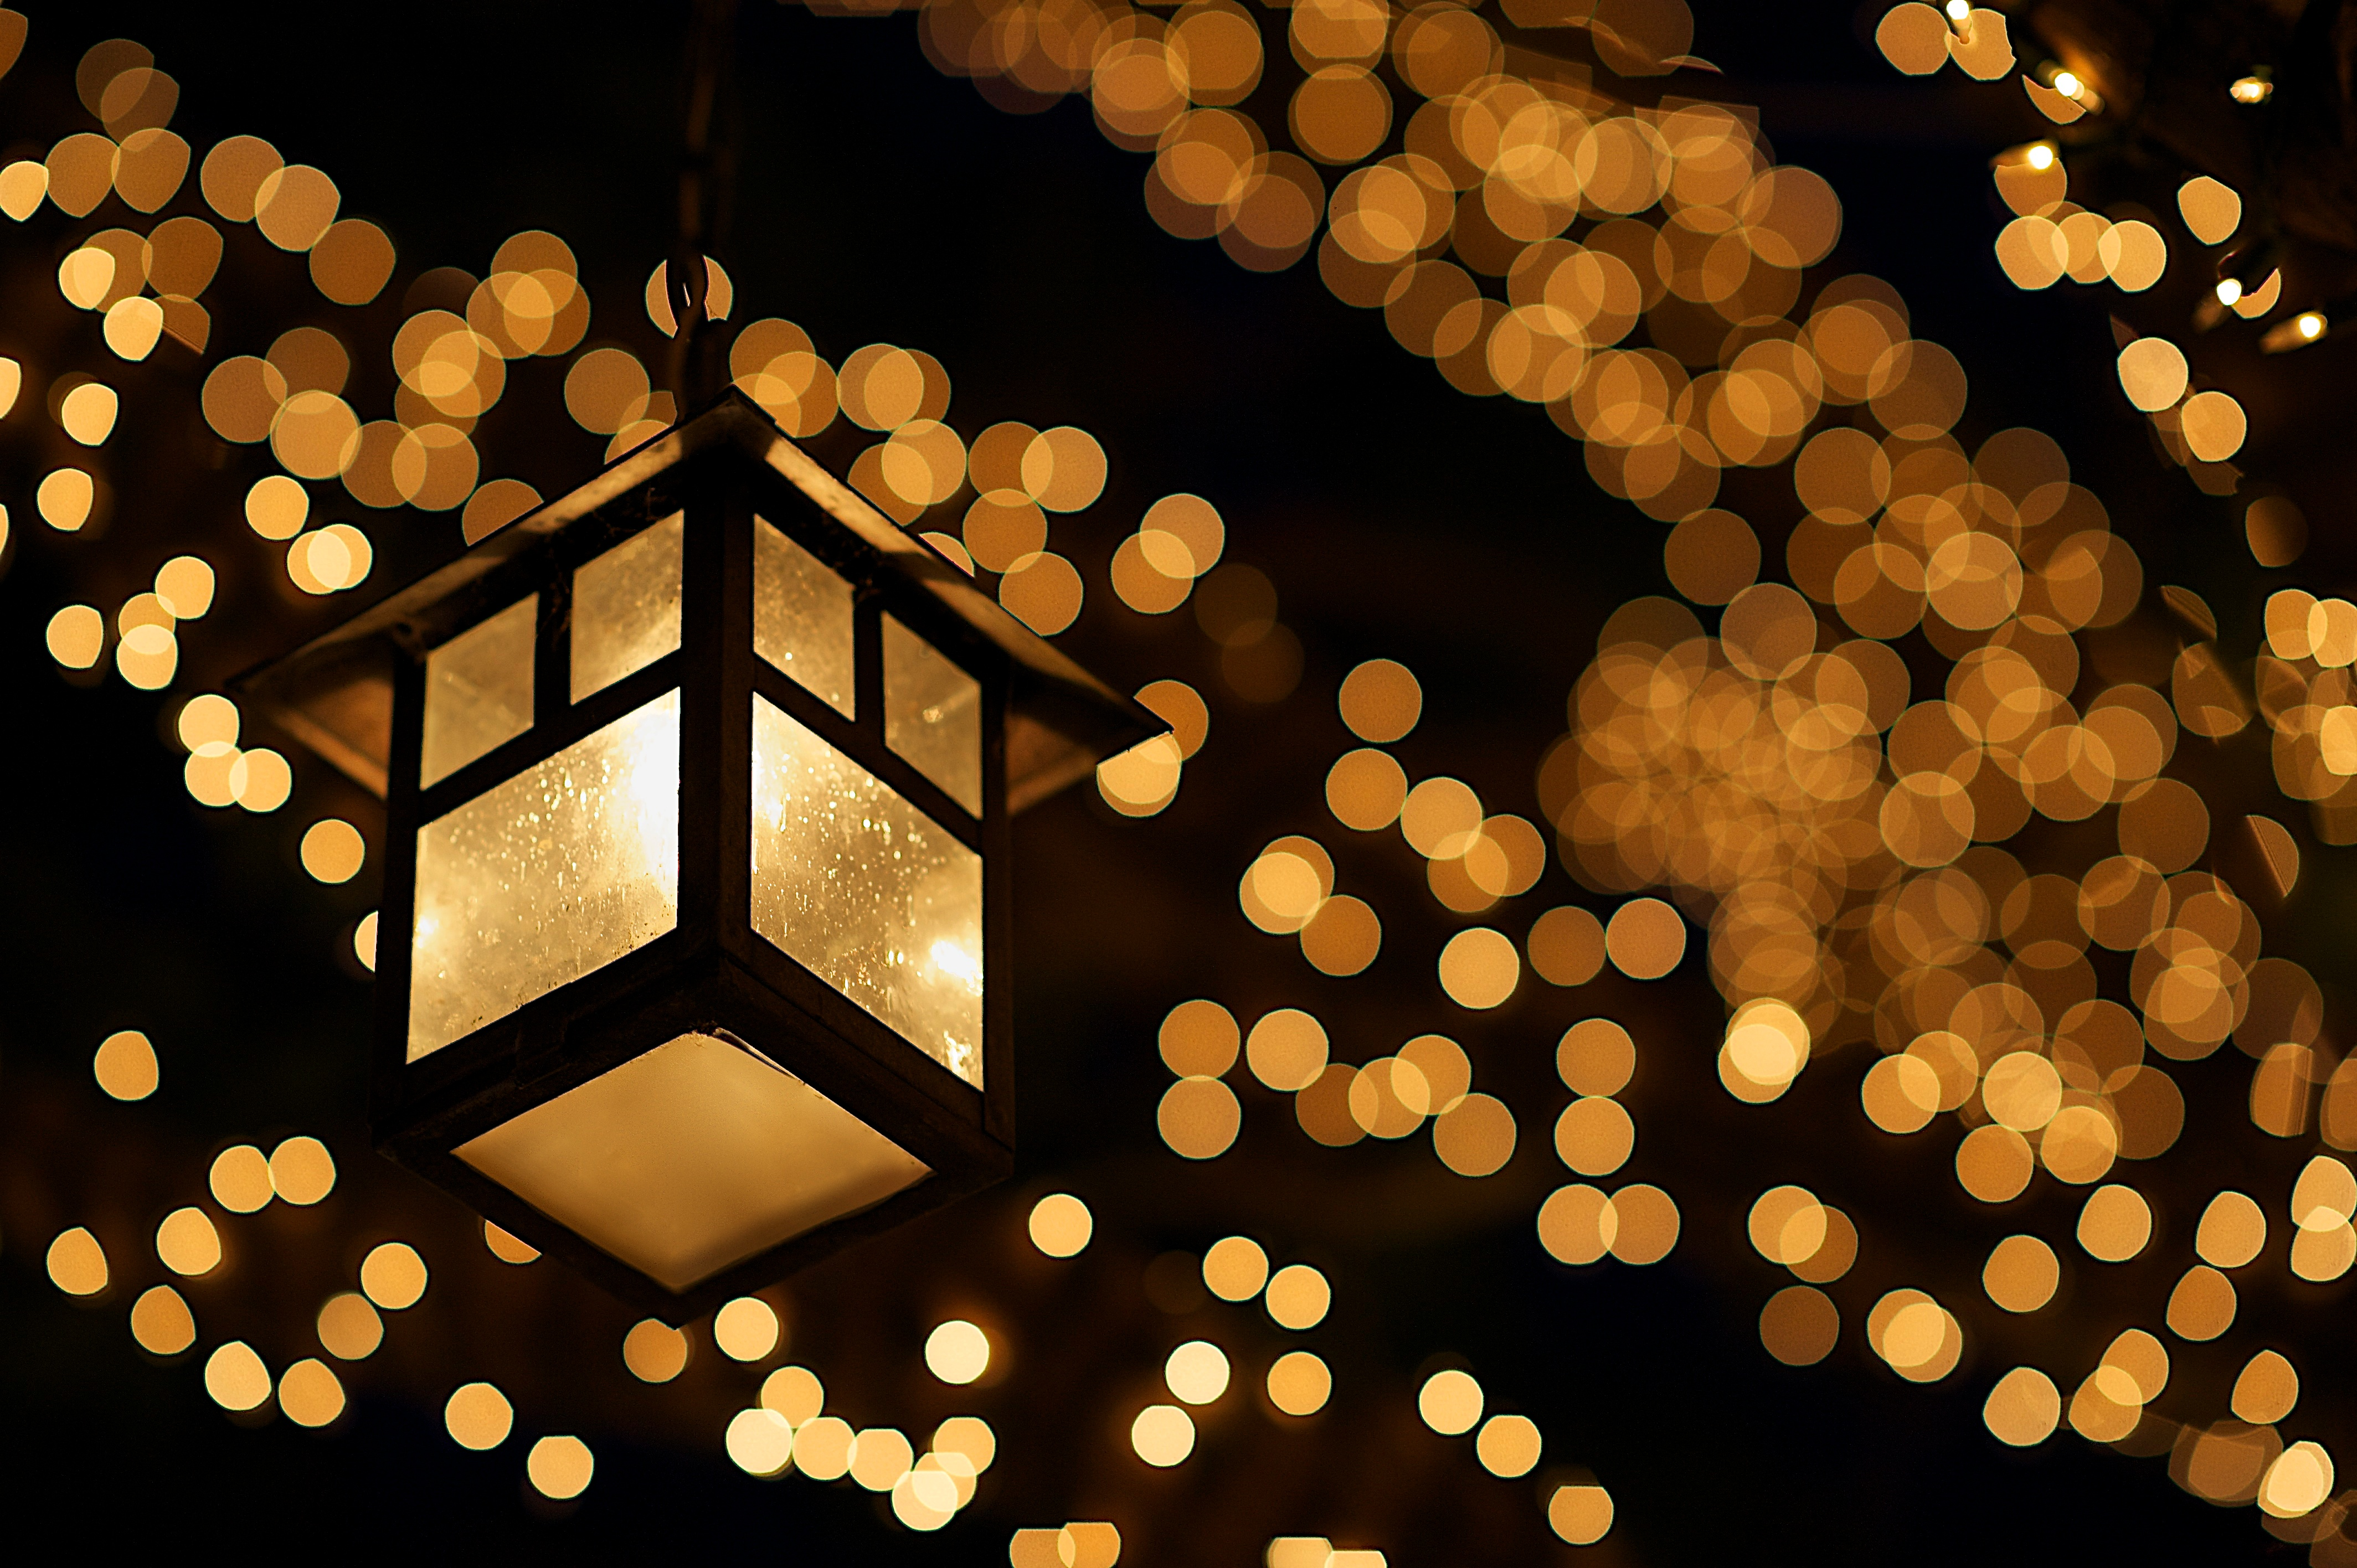 Amazing Bokeh Pictures & Backgrounds